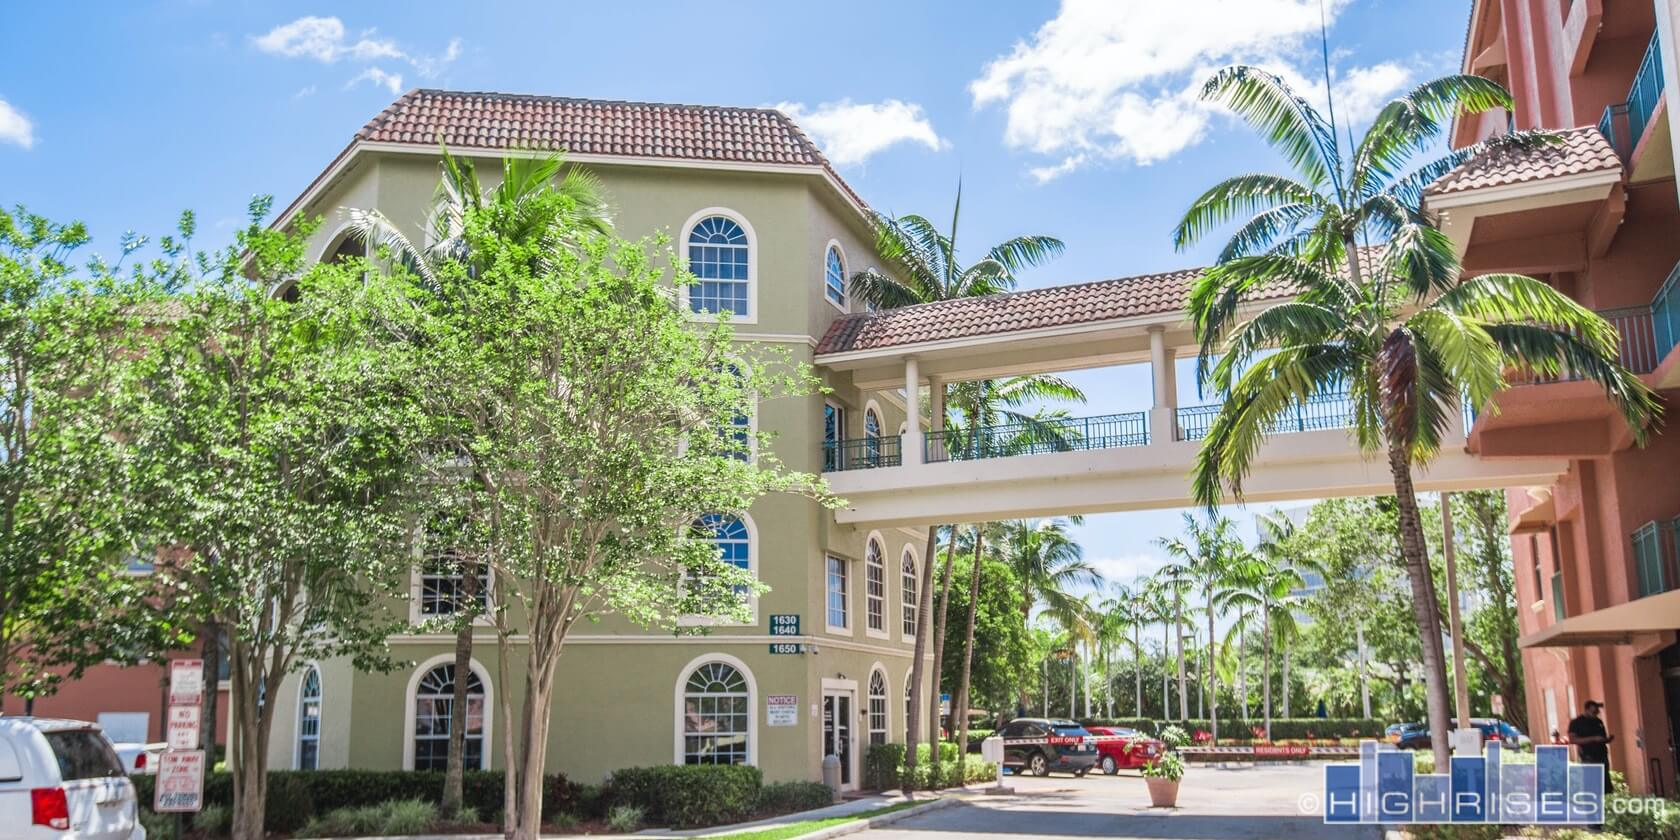 Park Place Condos of West Palm Beach, FL | 1640 Presidential Way